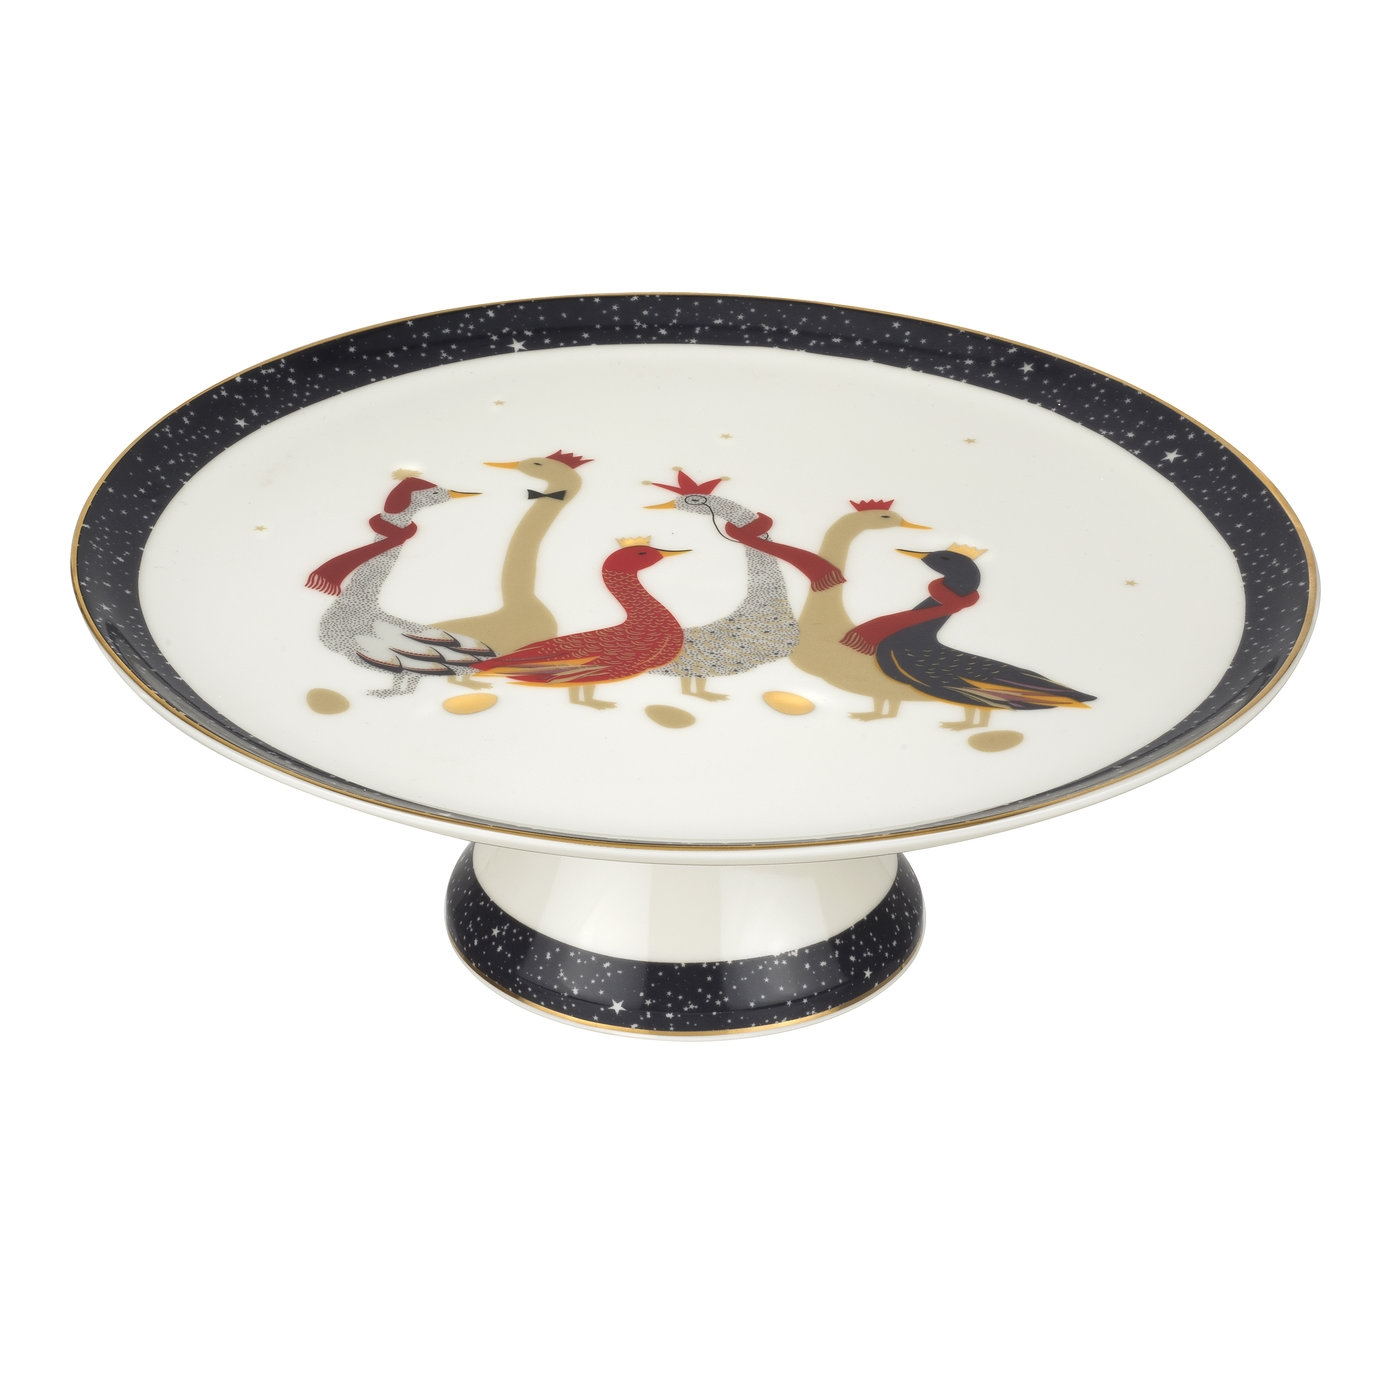 Sara Miller London For Portmeirion Christmas Geese 10.5 Inch Footed Cake Plate image number 0